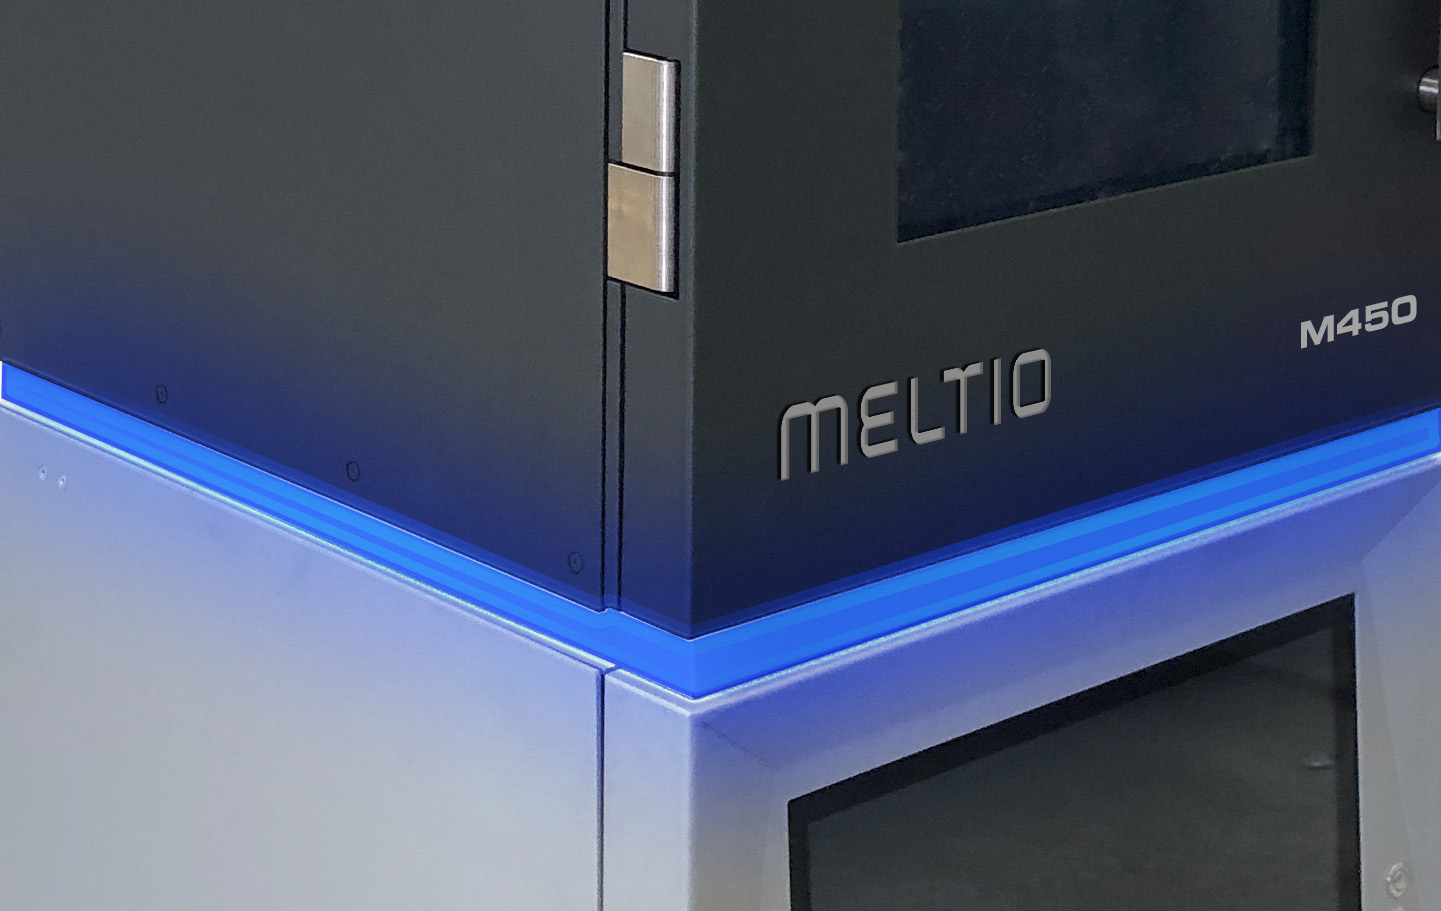 The Meltio M450. Photo via Meltio.